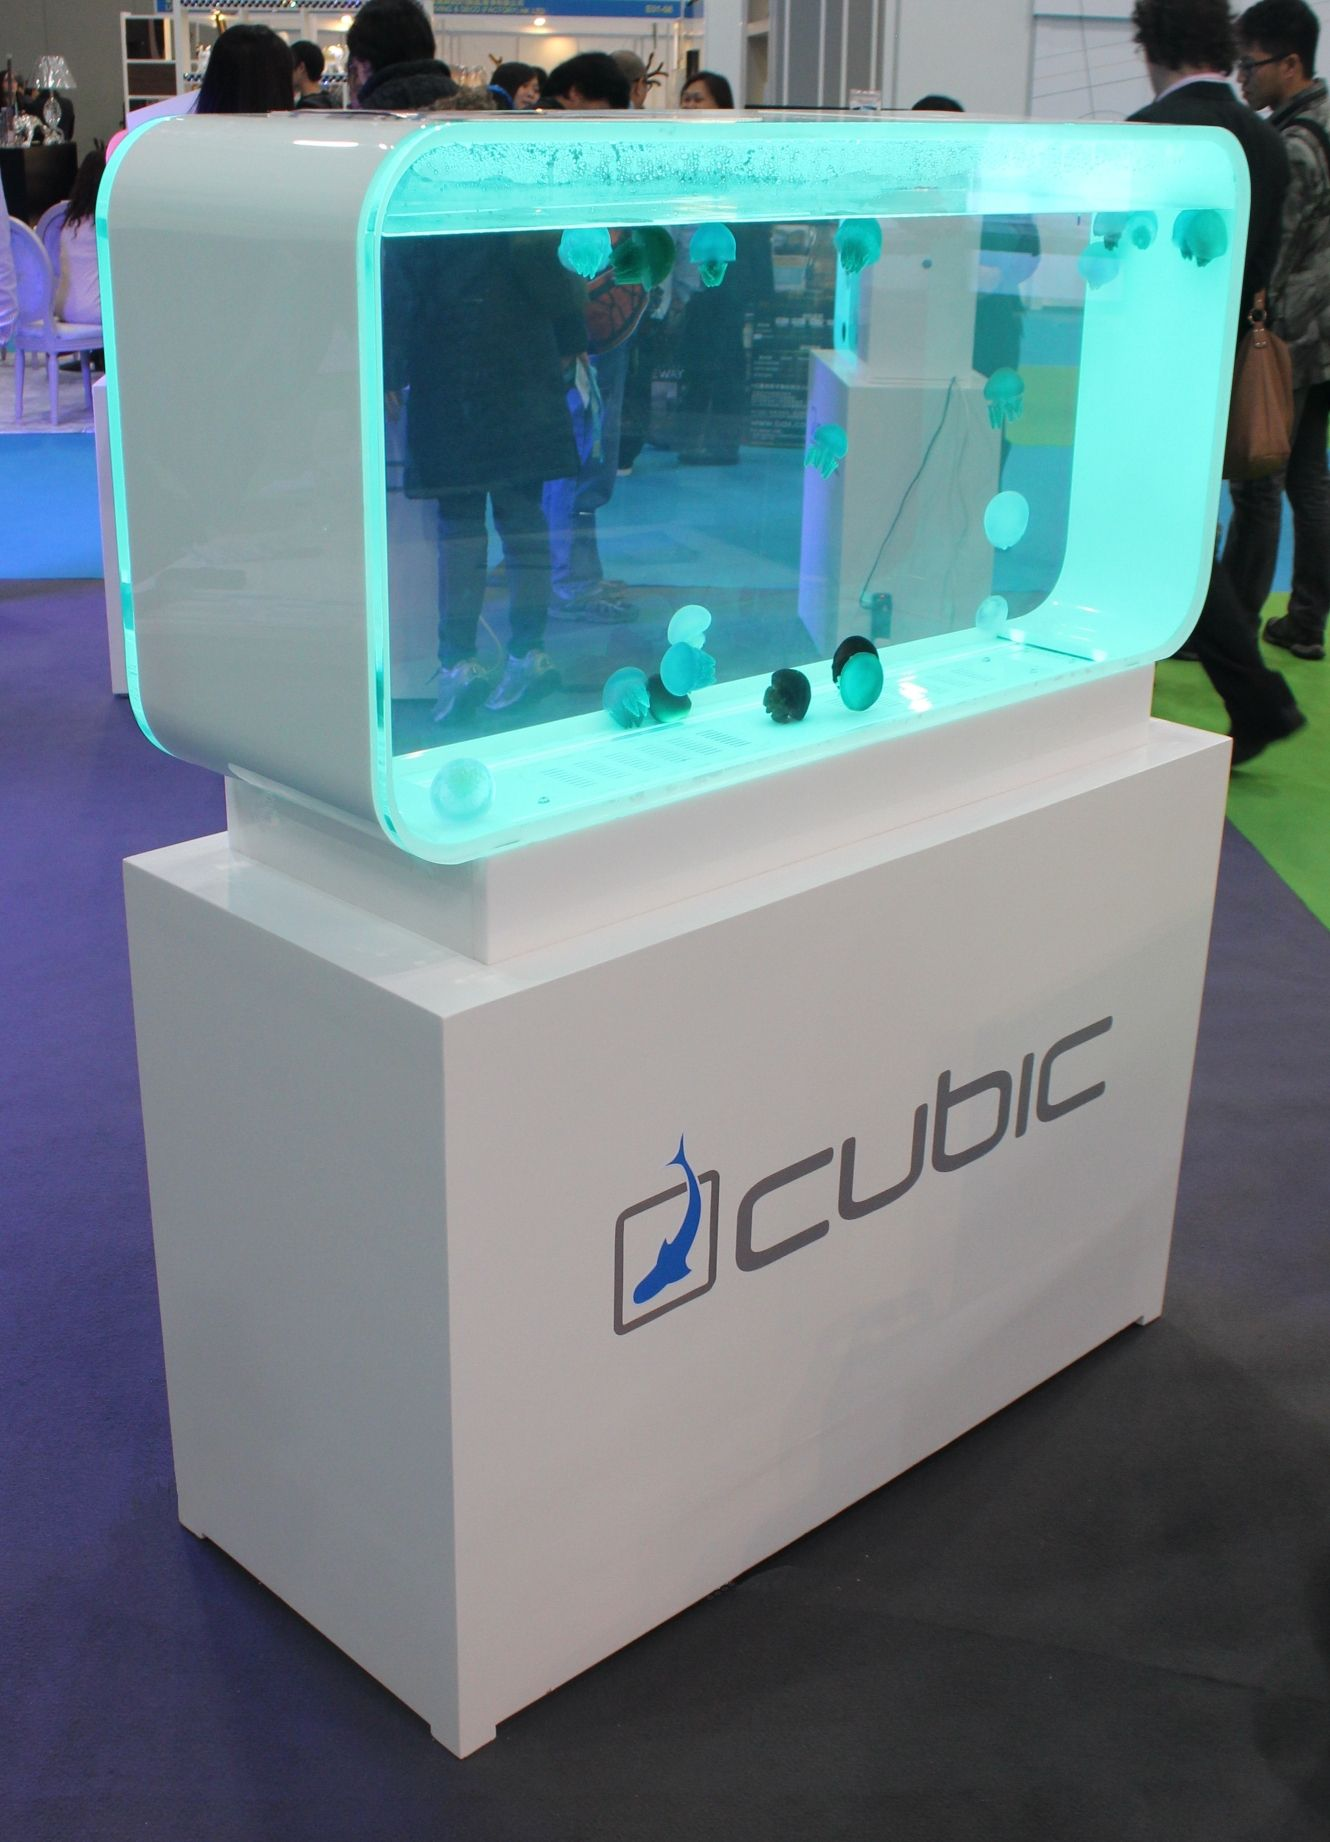 Aquarium fish tank complete system - Pulse 280 Jellyfish Aquarium Containing Blue Blubber Jellyfish Made By Cubic Aquarium Systems